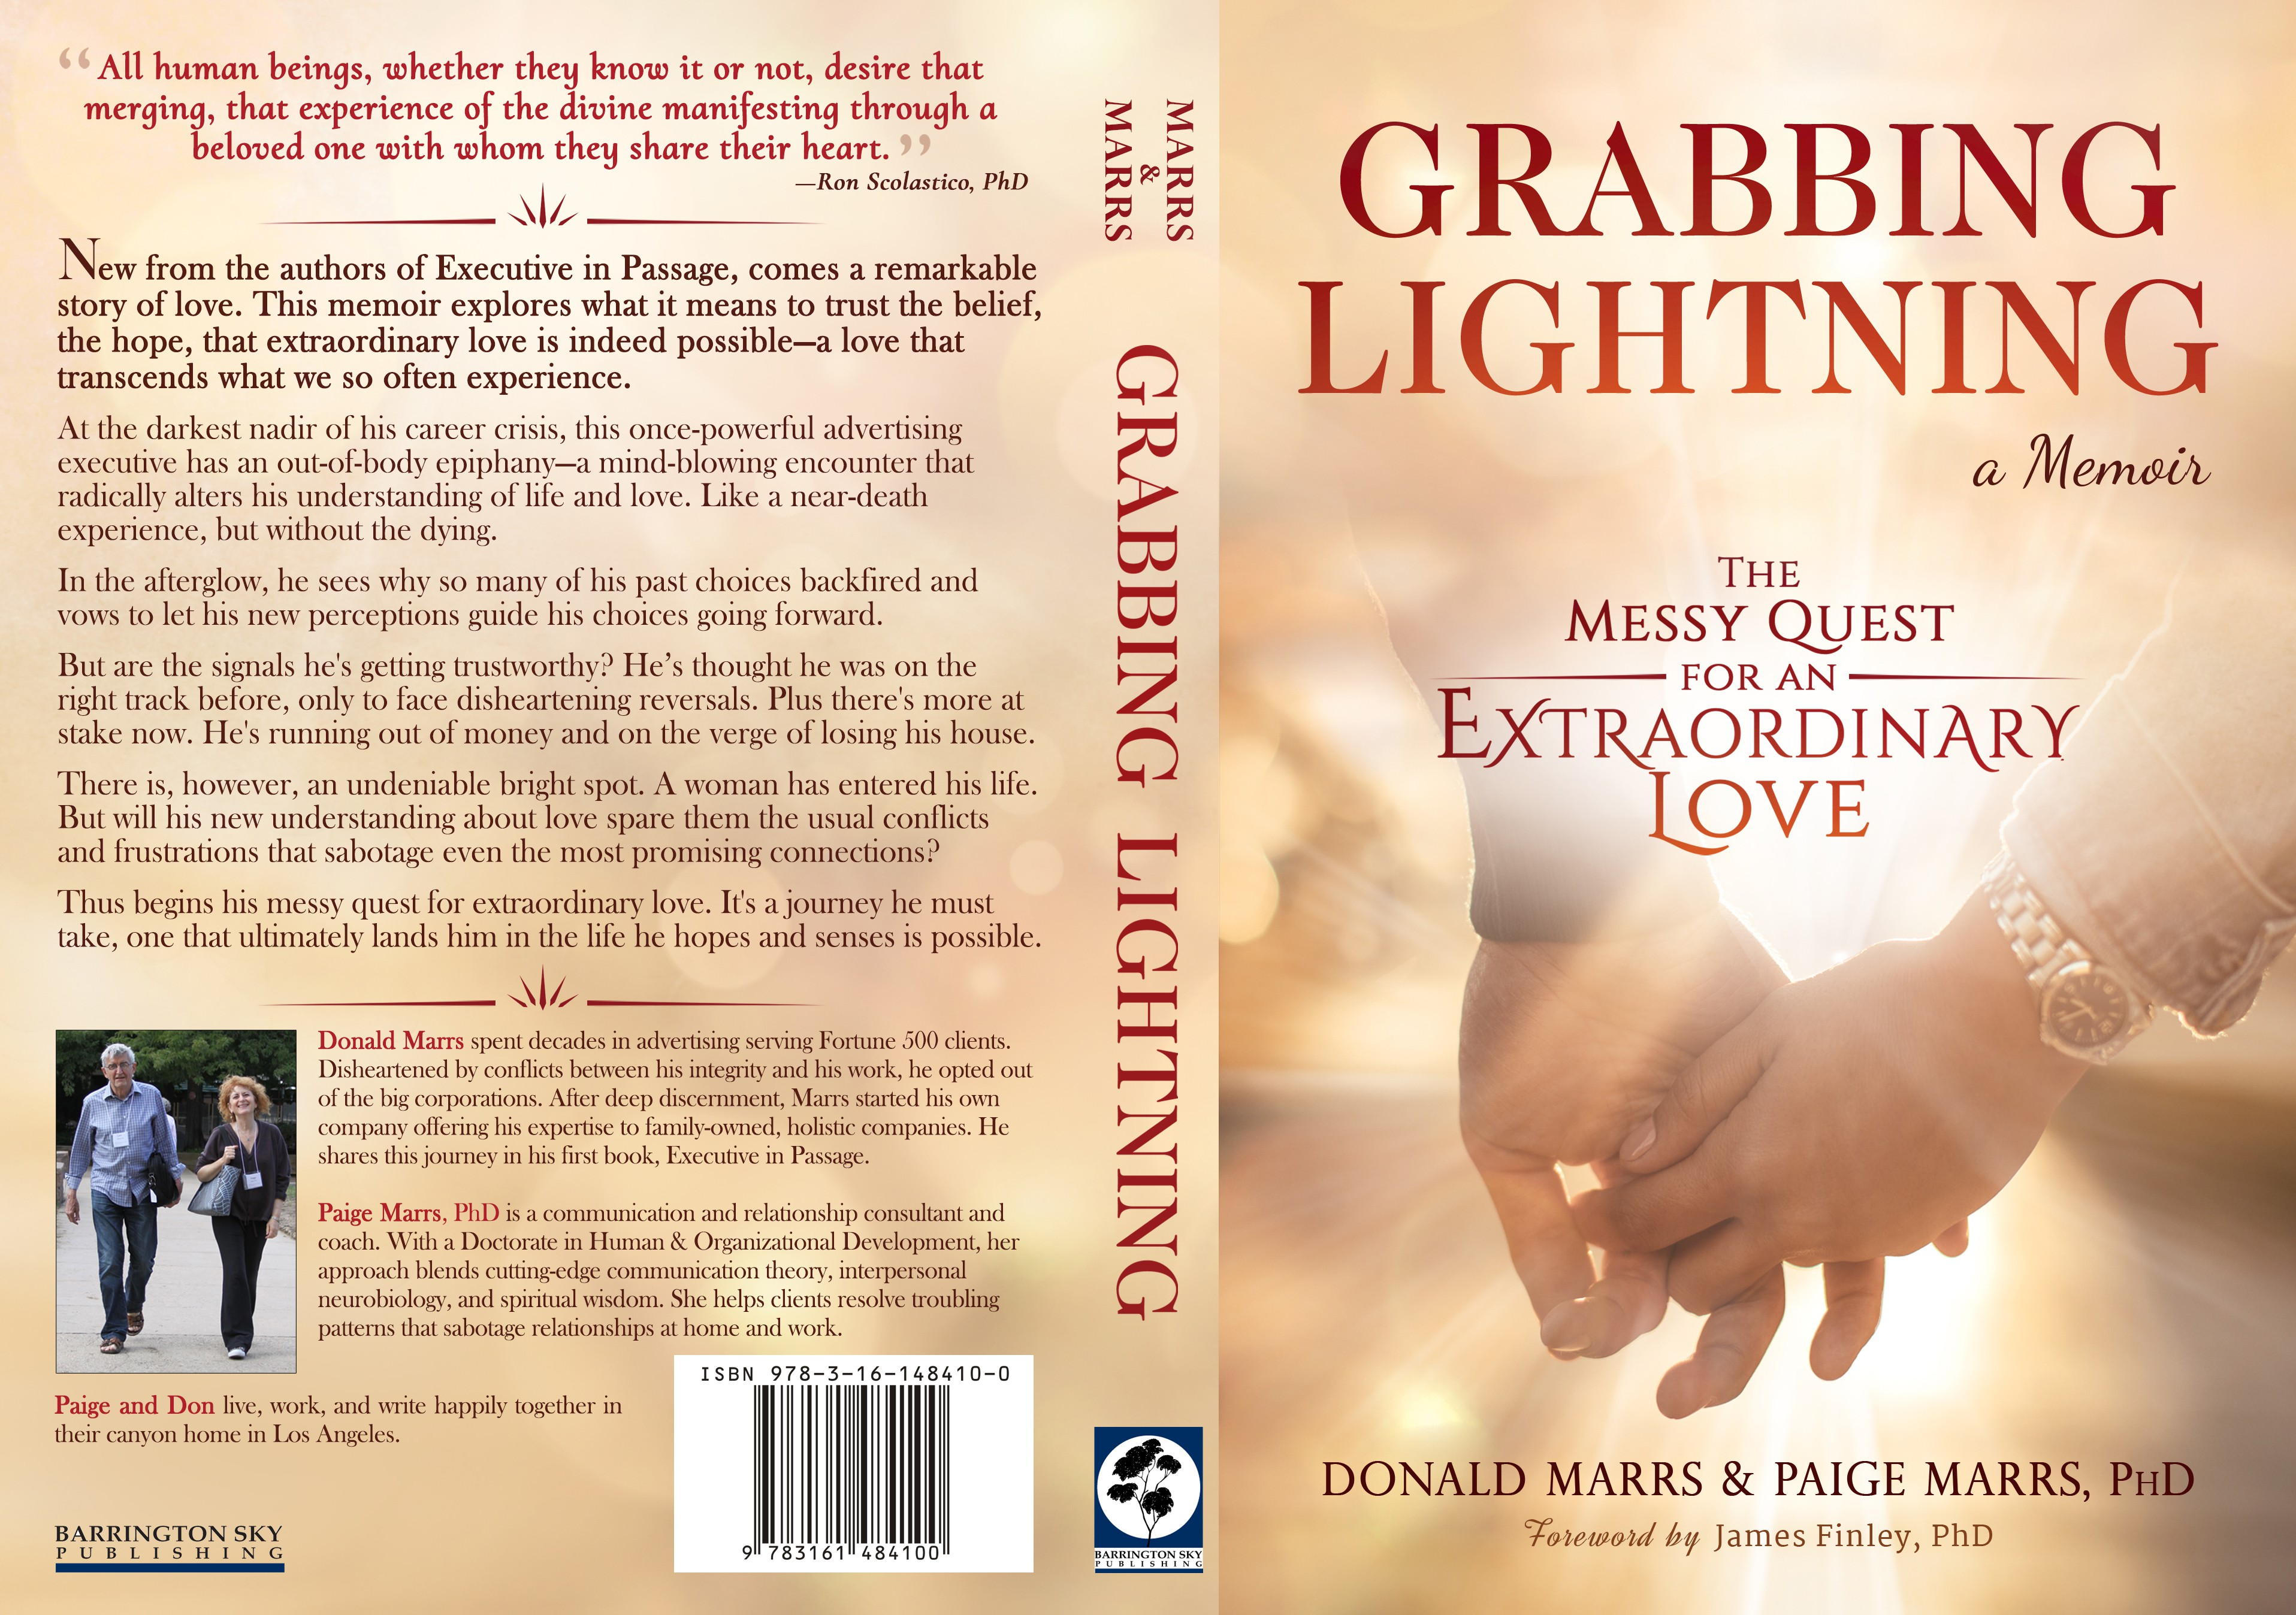 Design compelling book cover for a memoir about finding extraordinary love.